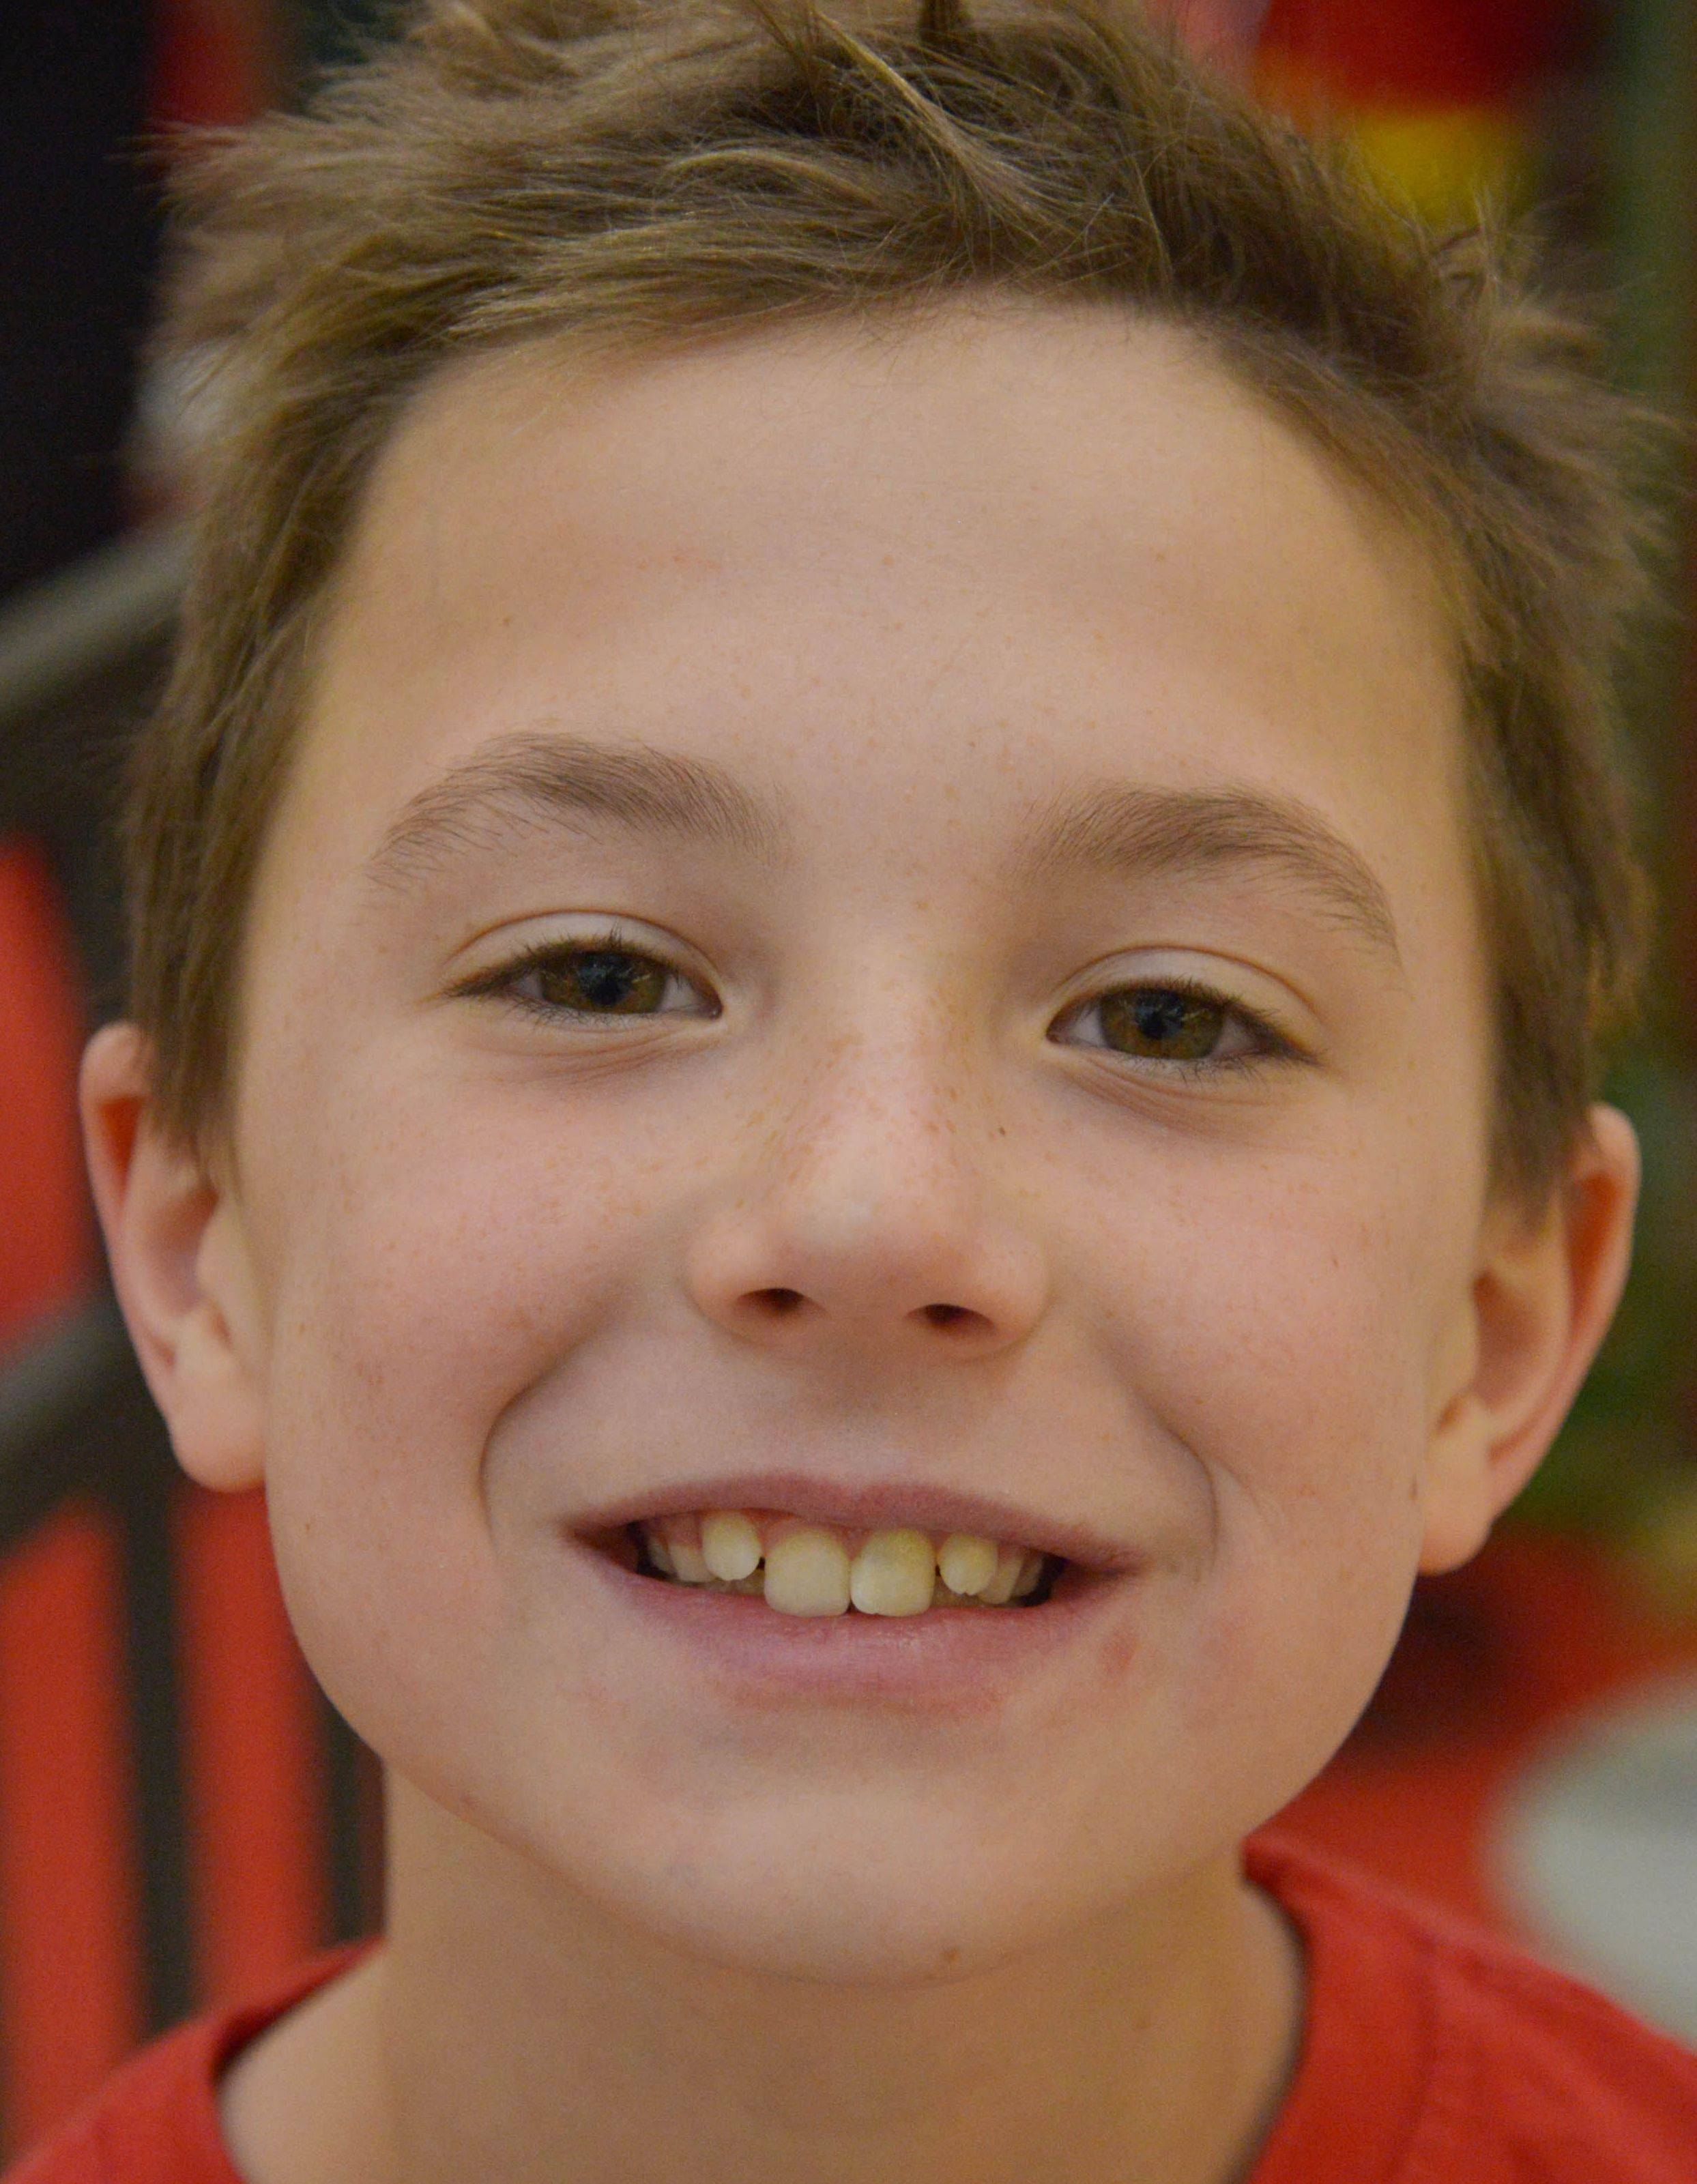 Logan Brown, 8, of Glen Ellyn, wants basketball shoes.